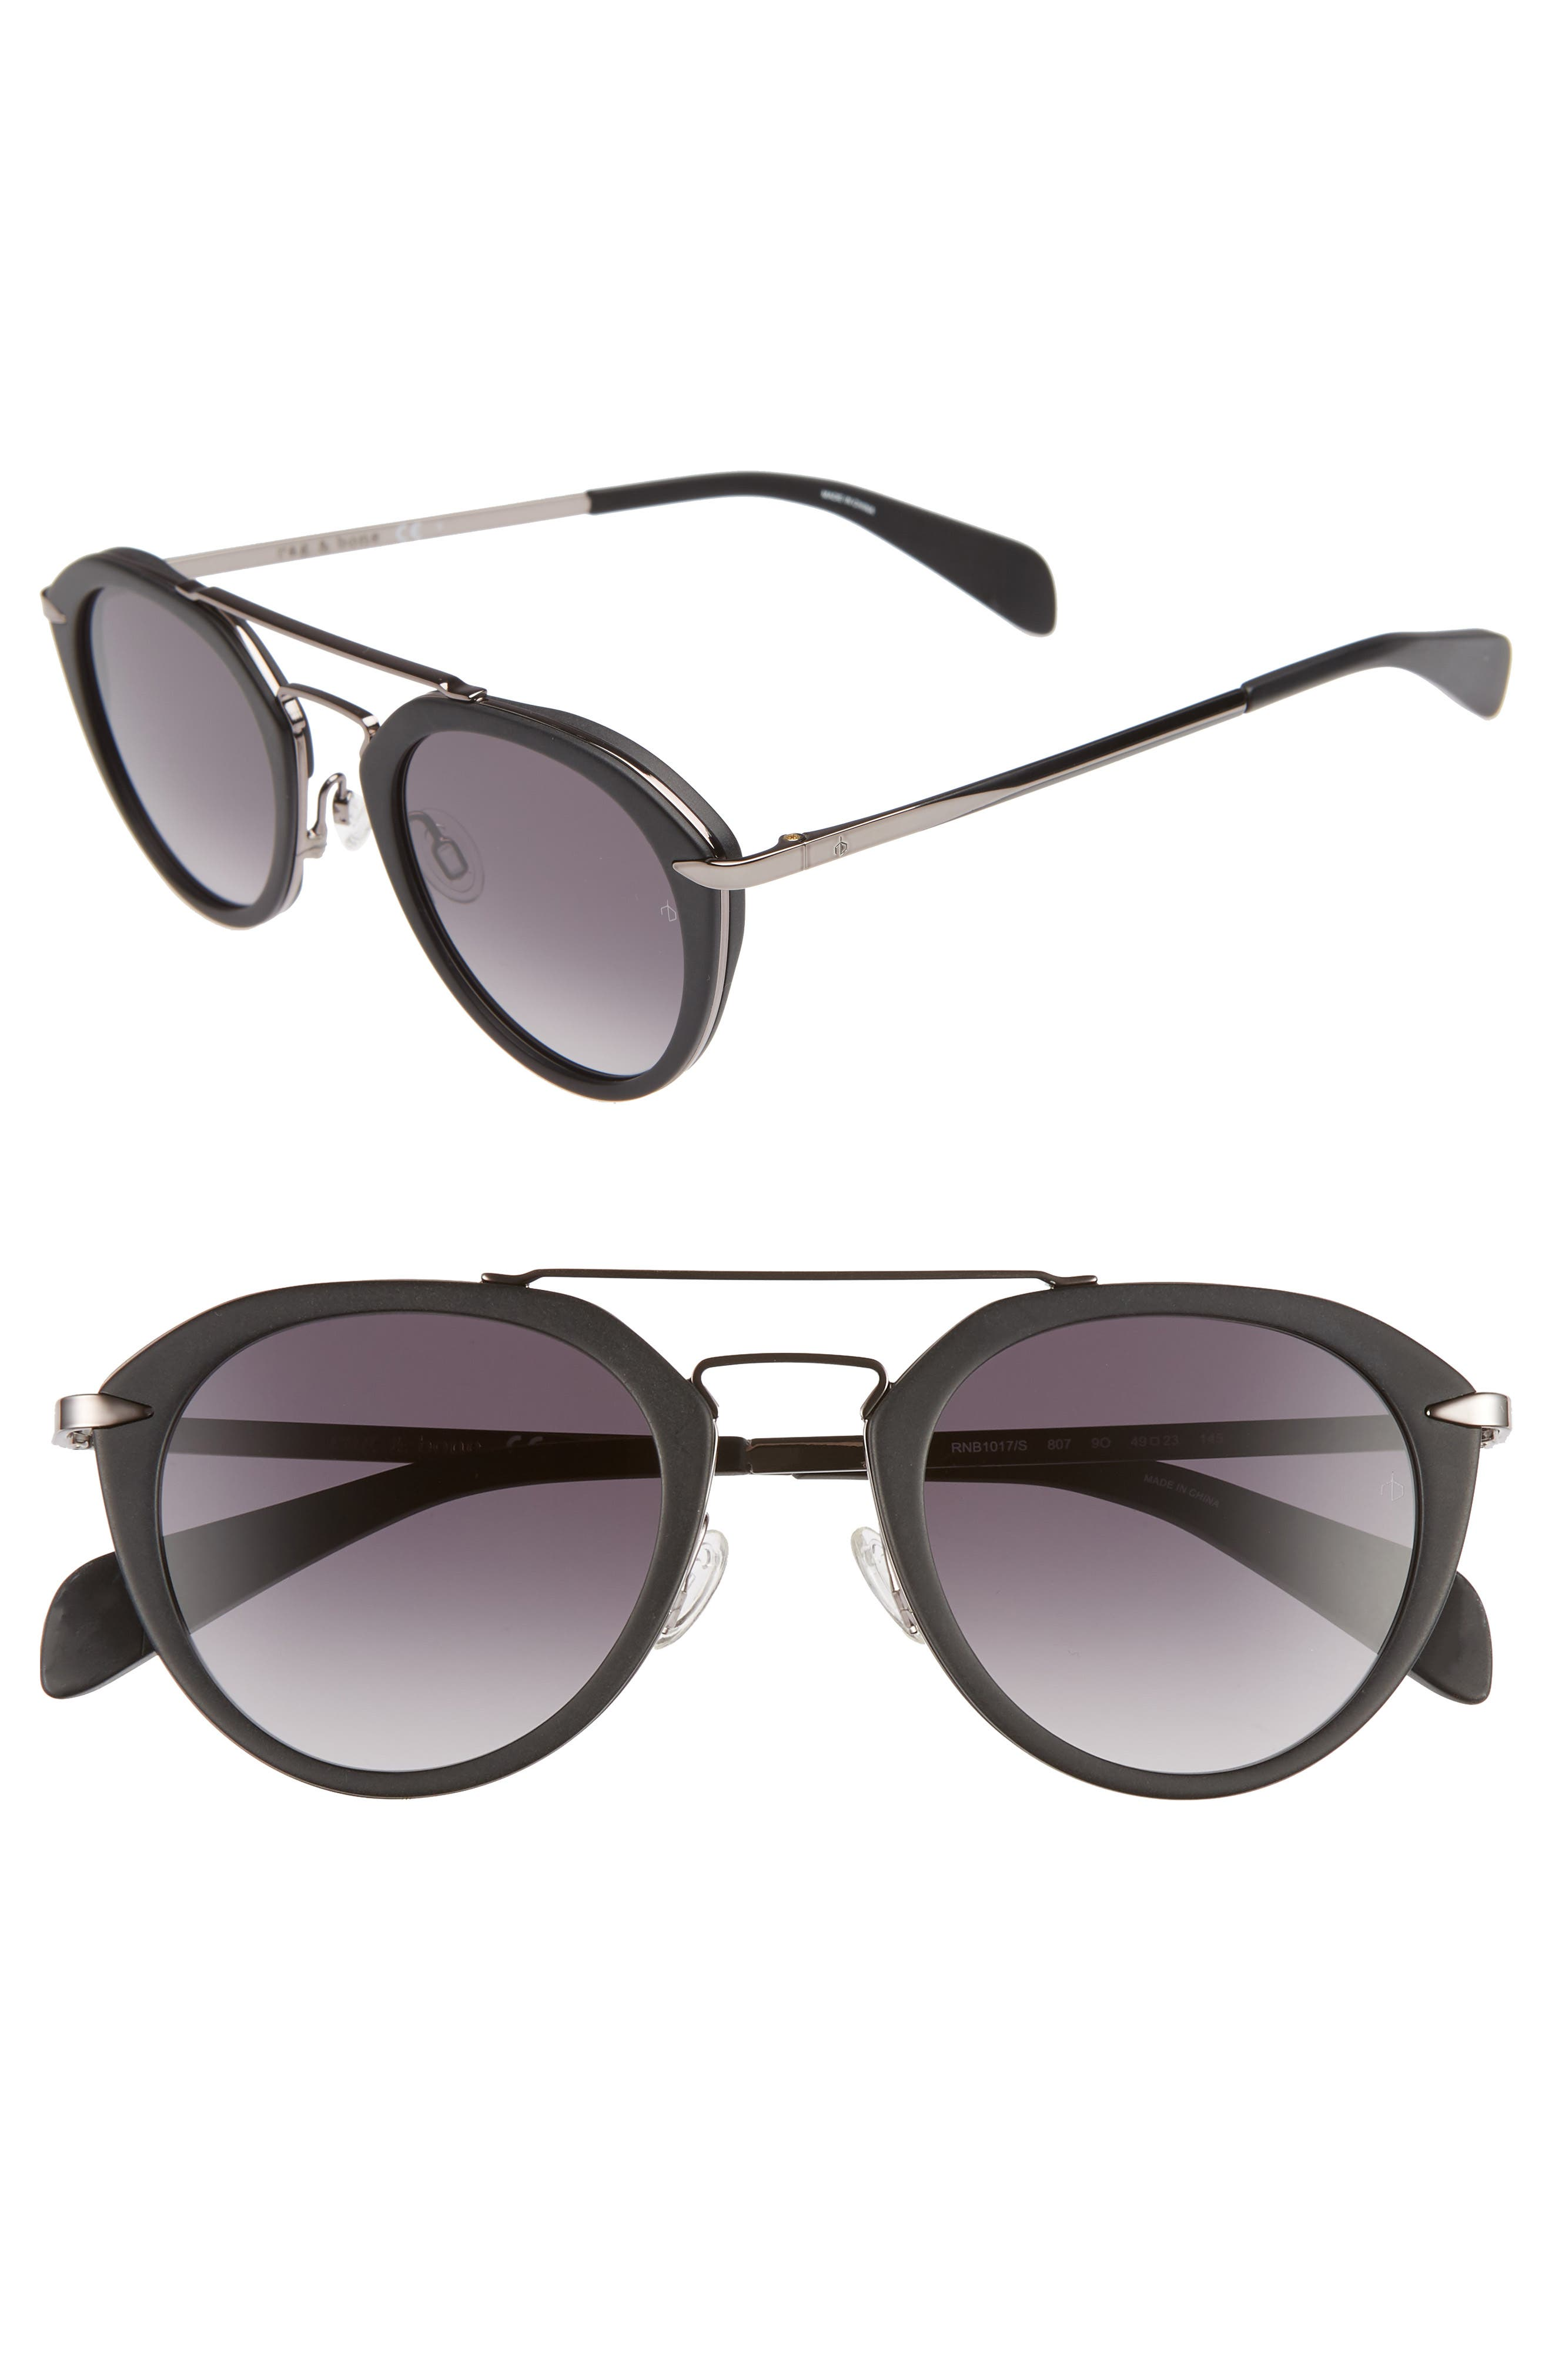 49mm Round Sunglasses,                             Main thumbnail 1, color,                             BLACK